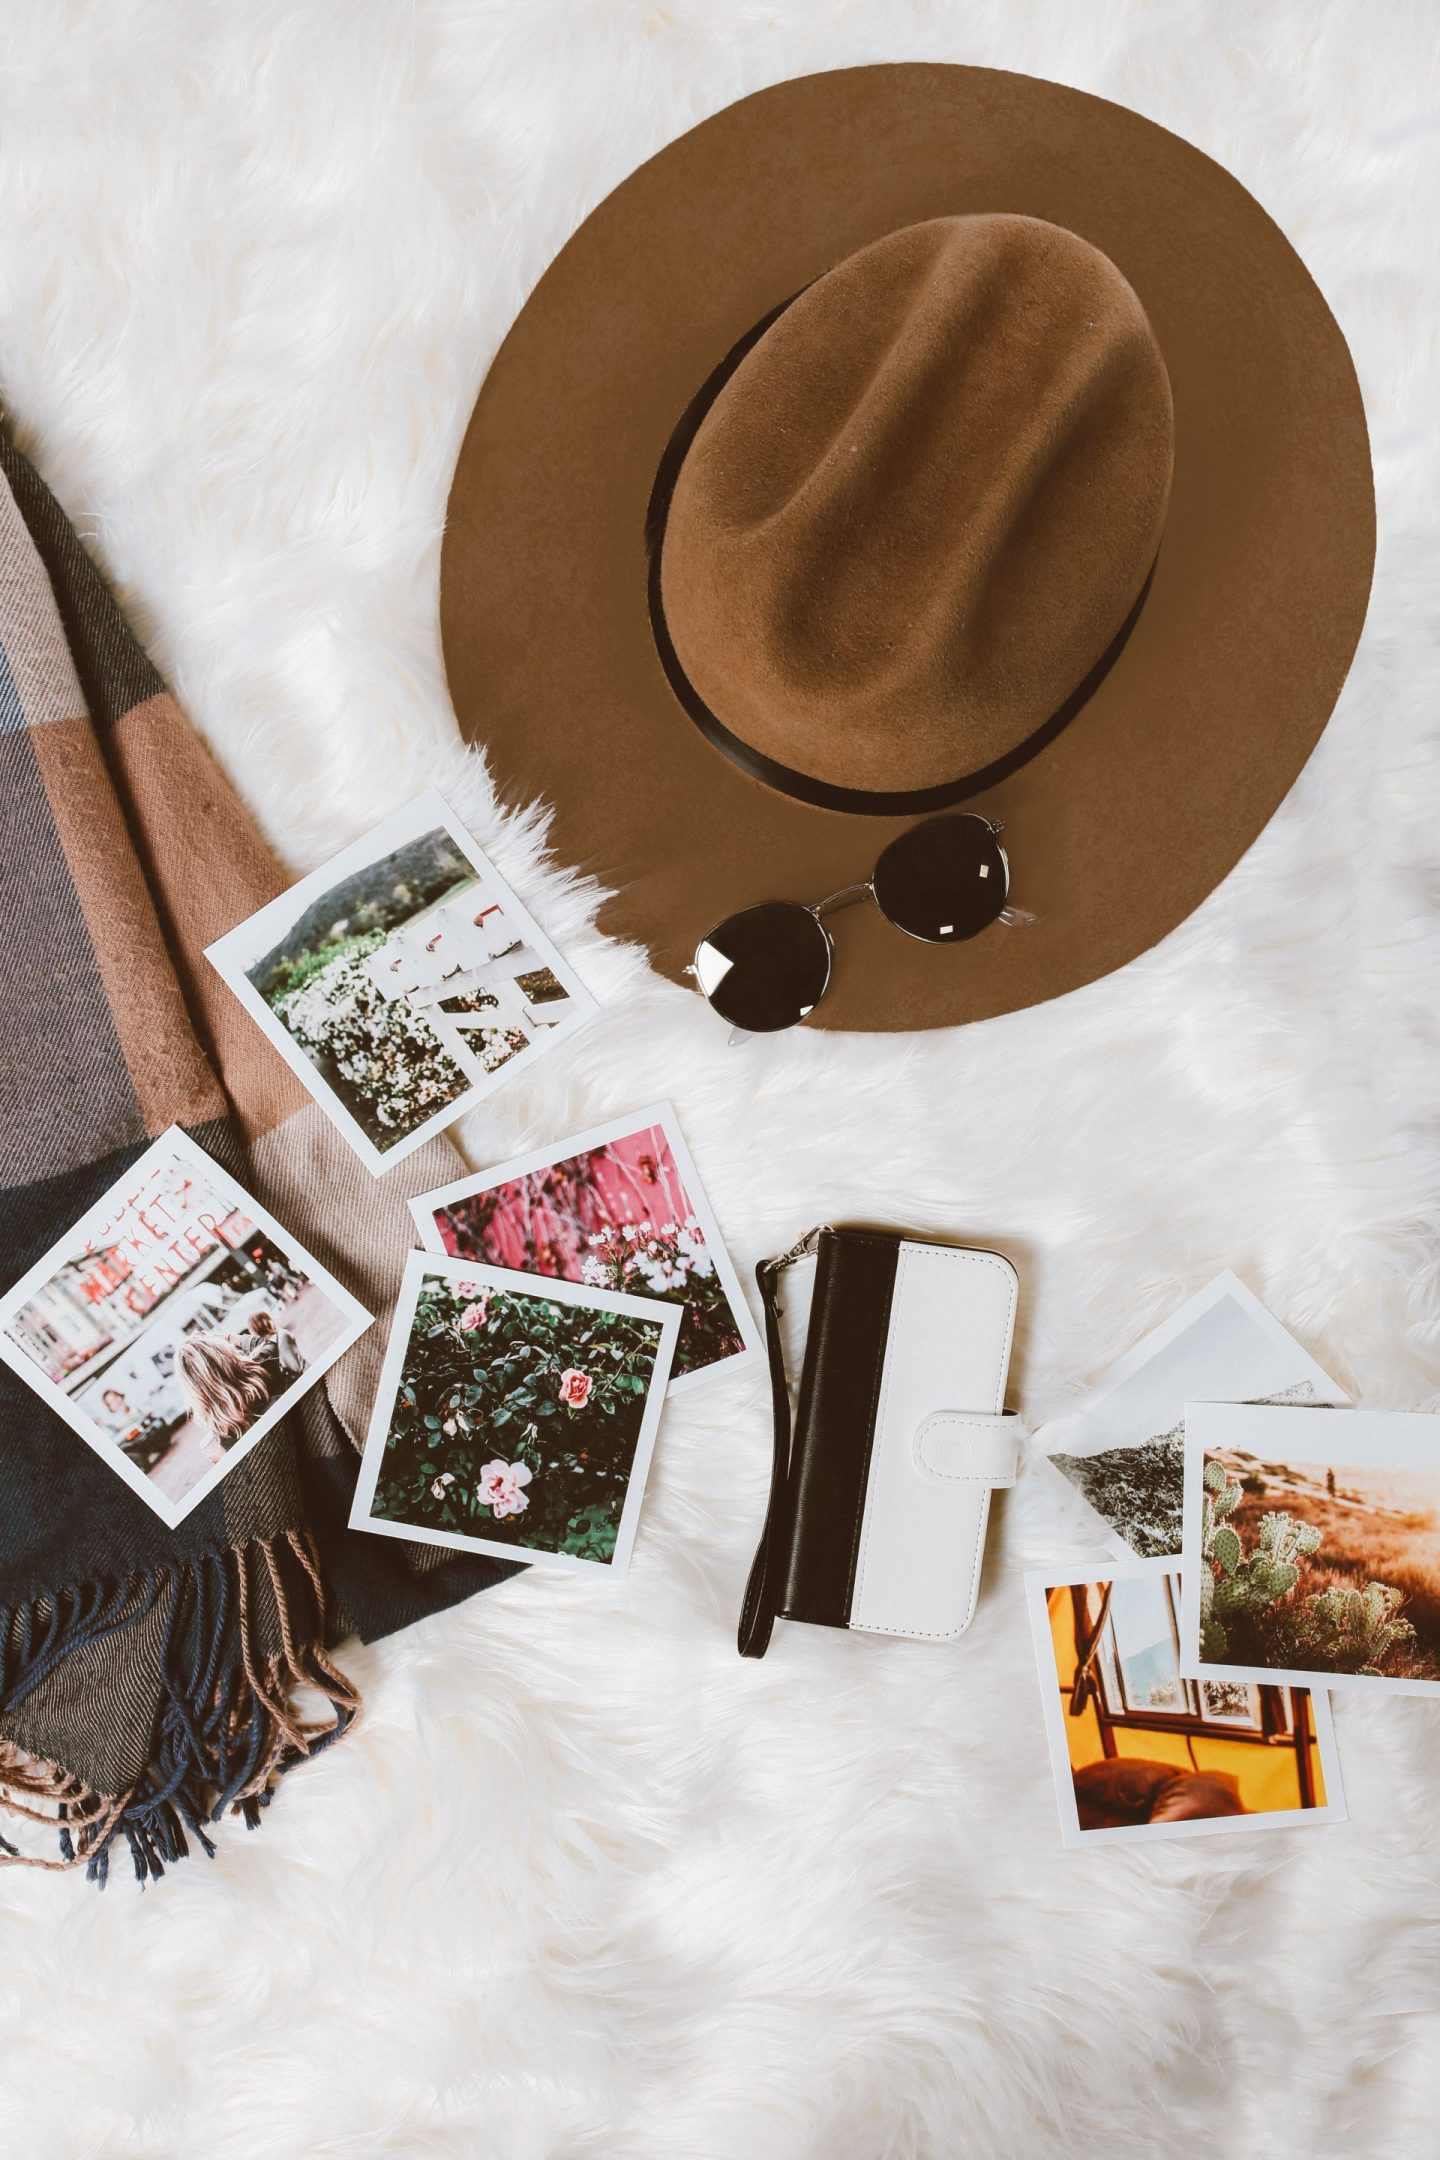 polaroid's, camera, photography, travel, traveling, flatlay, hat, photos